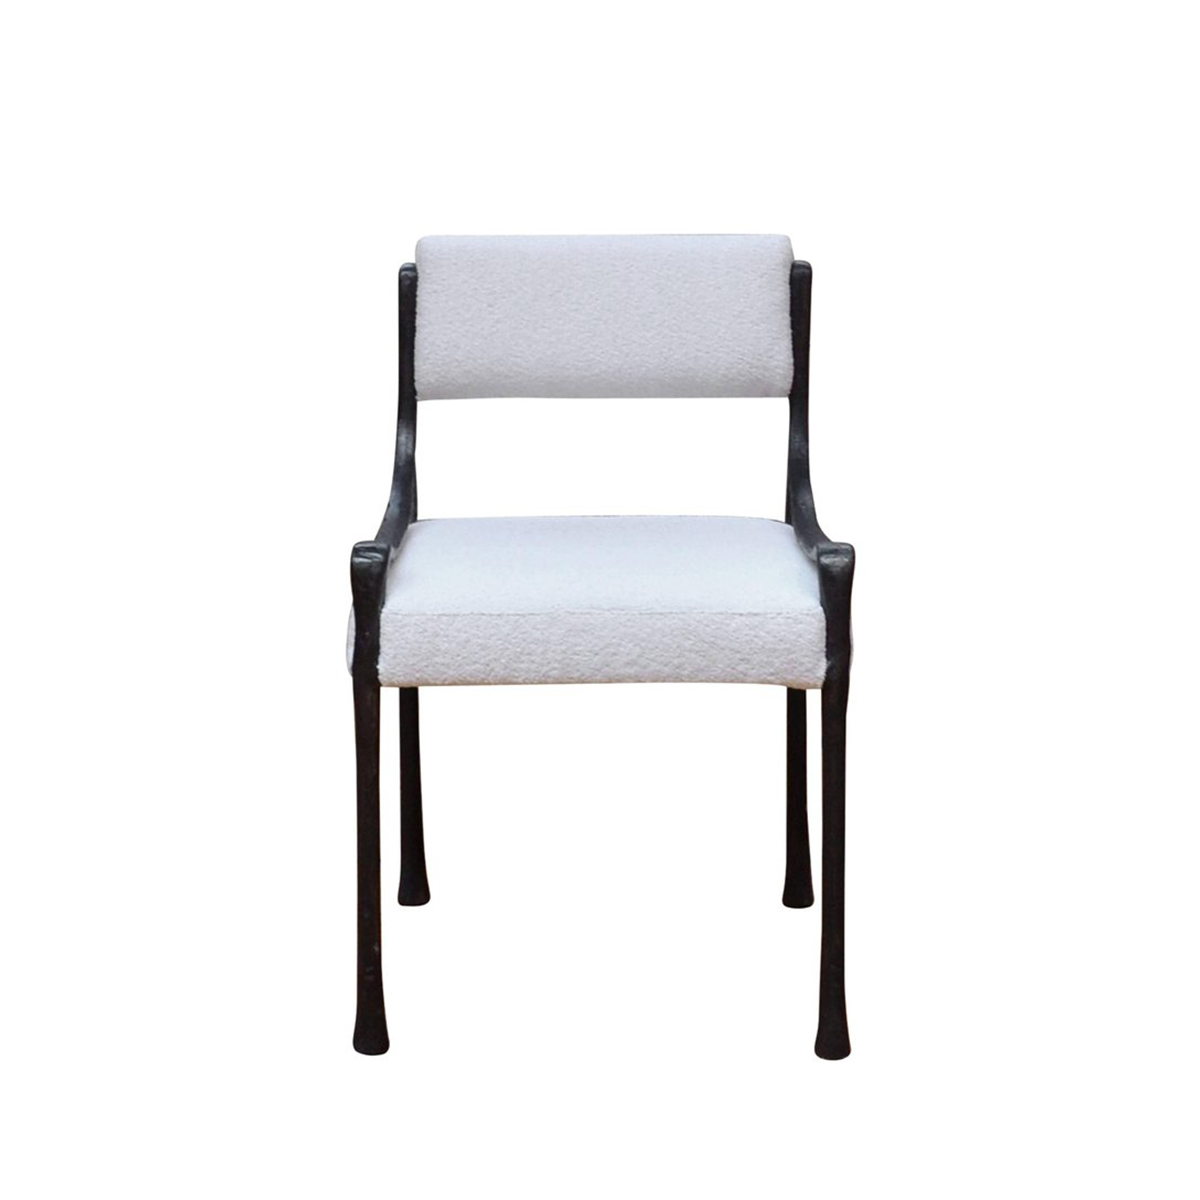 "Giac Side Chair   21 1/8""W x 21 1/8""D x 32""H, 19""SH, 21""AH. Available in Black with white boucle as shown. 10x Available. Can be bought as a set or individually."